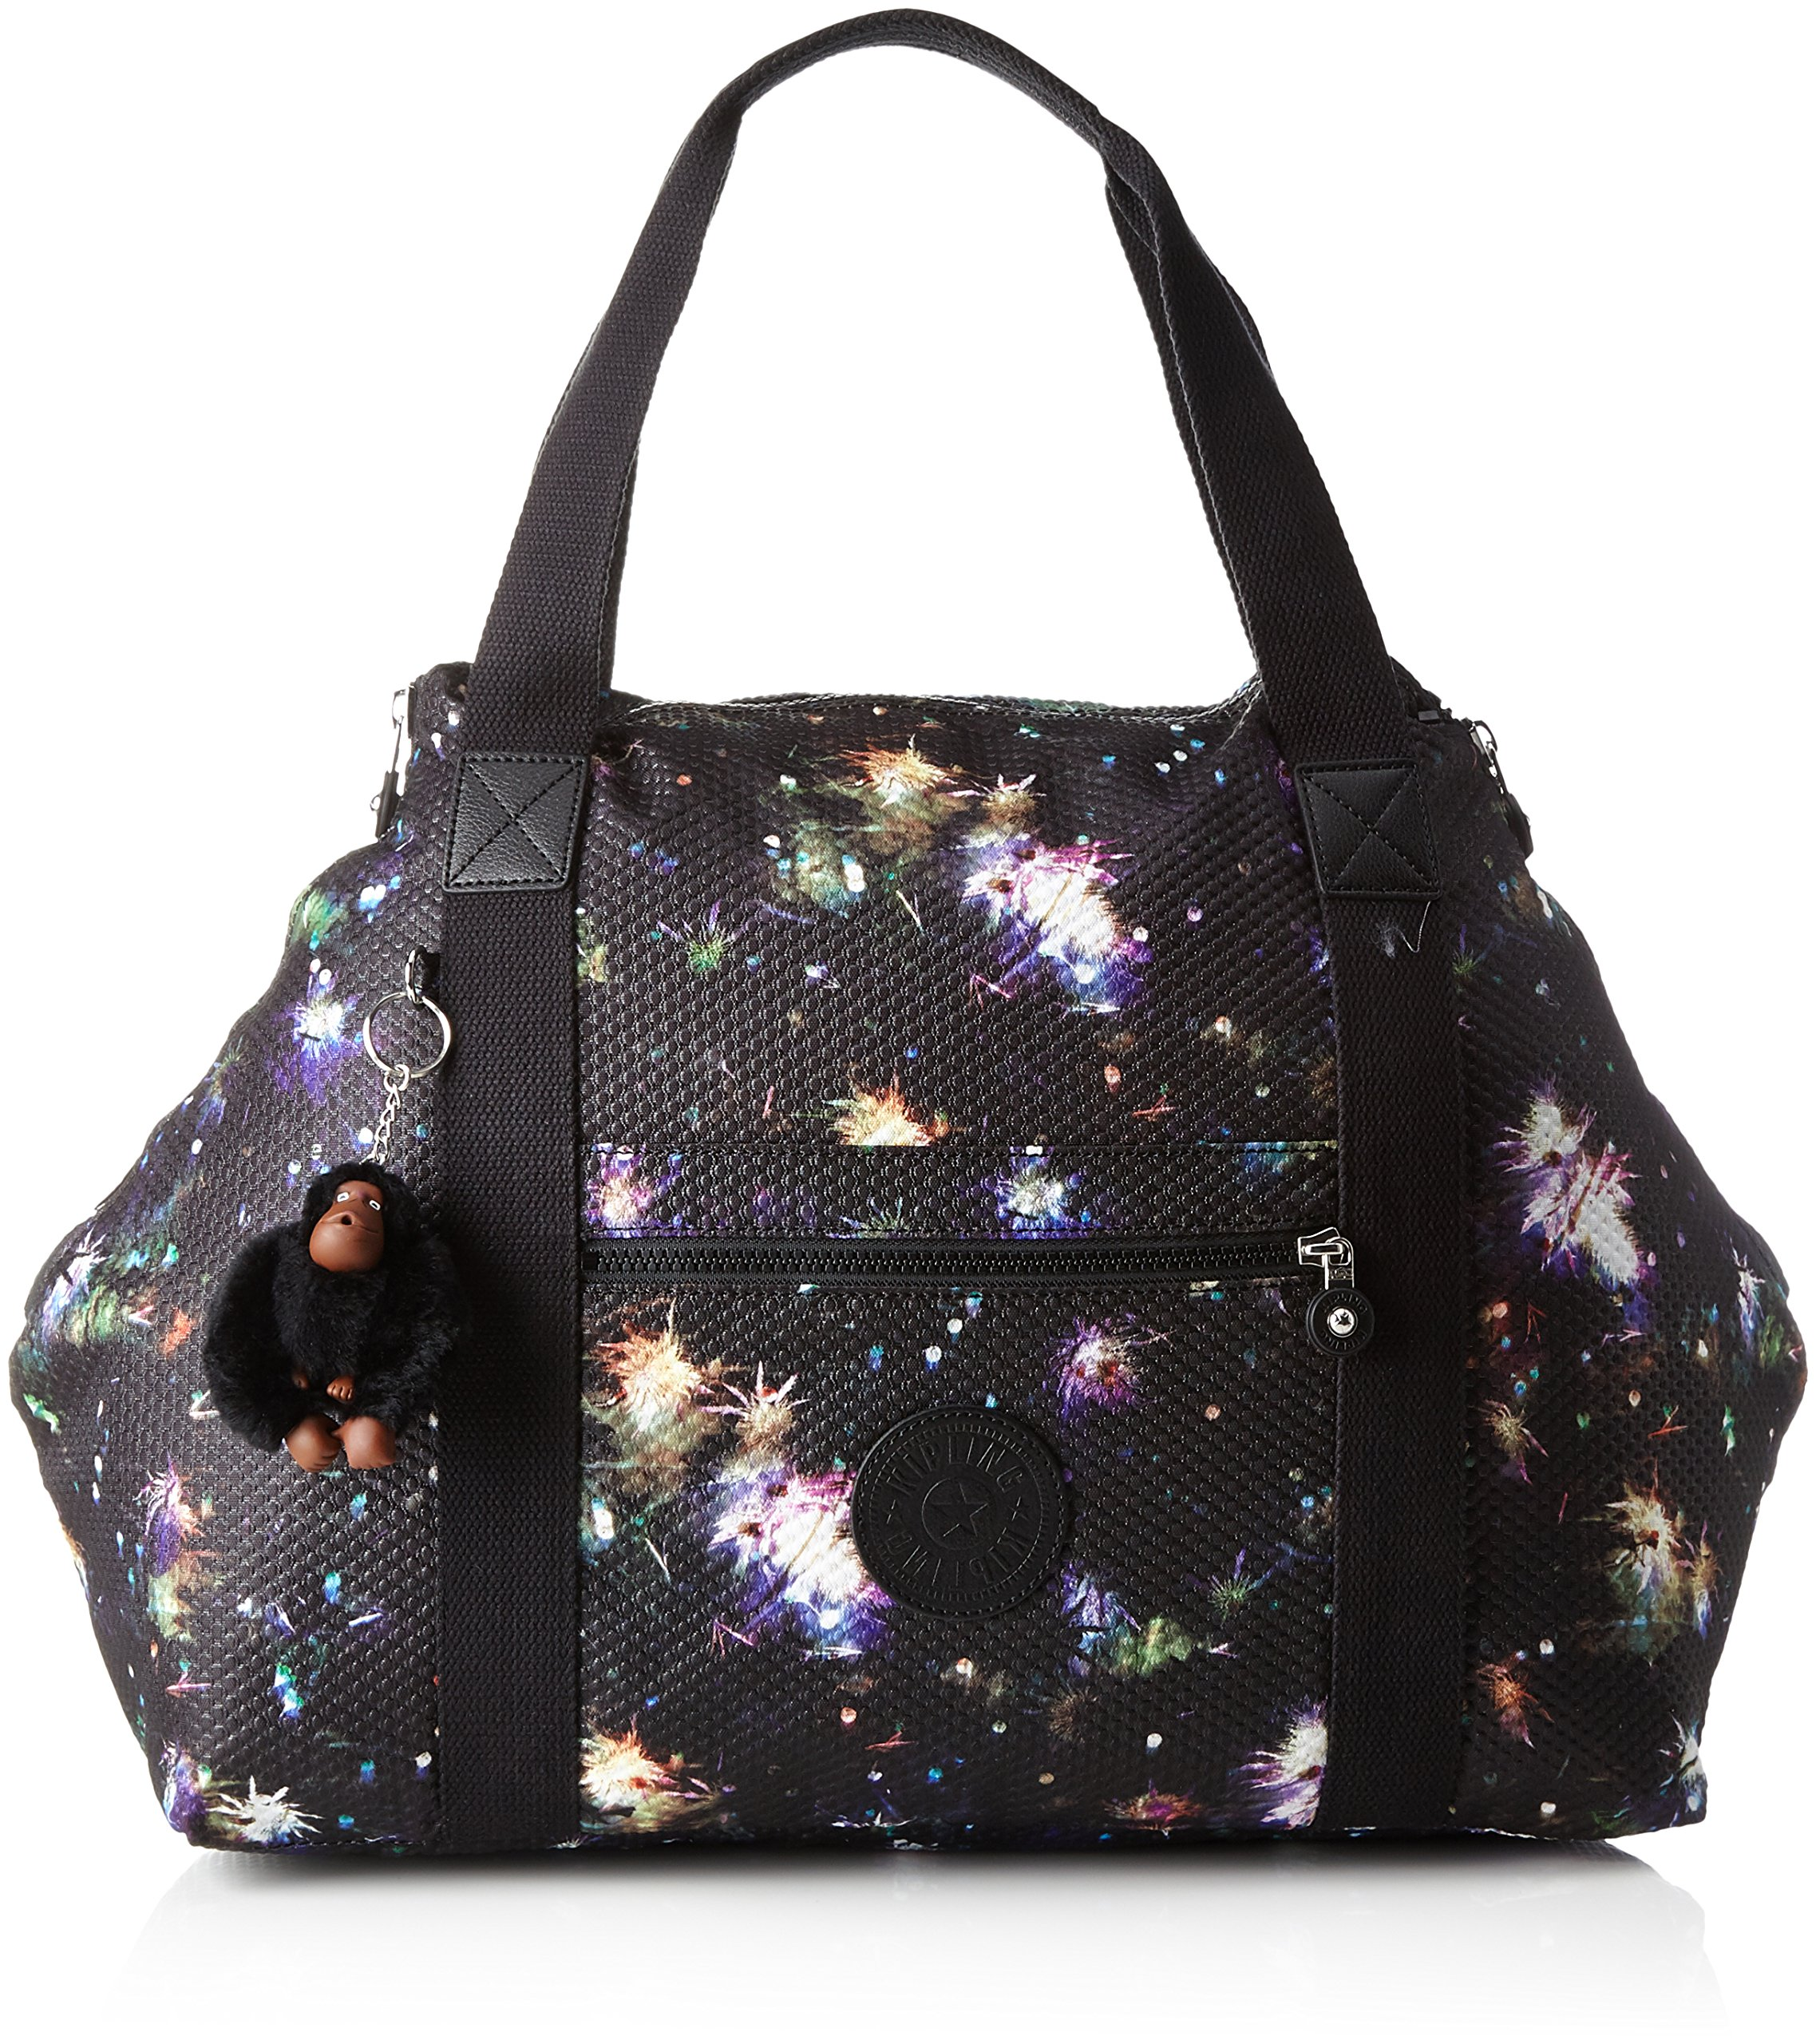 77d7dfc174 Best Rated in Travel Totes   Helpful Customer Reviews - Amazon.co.uk